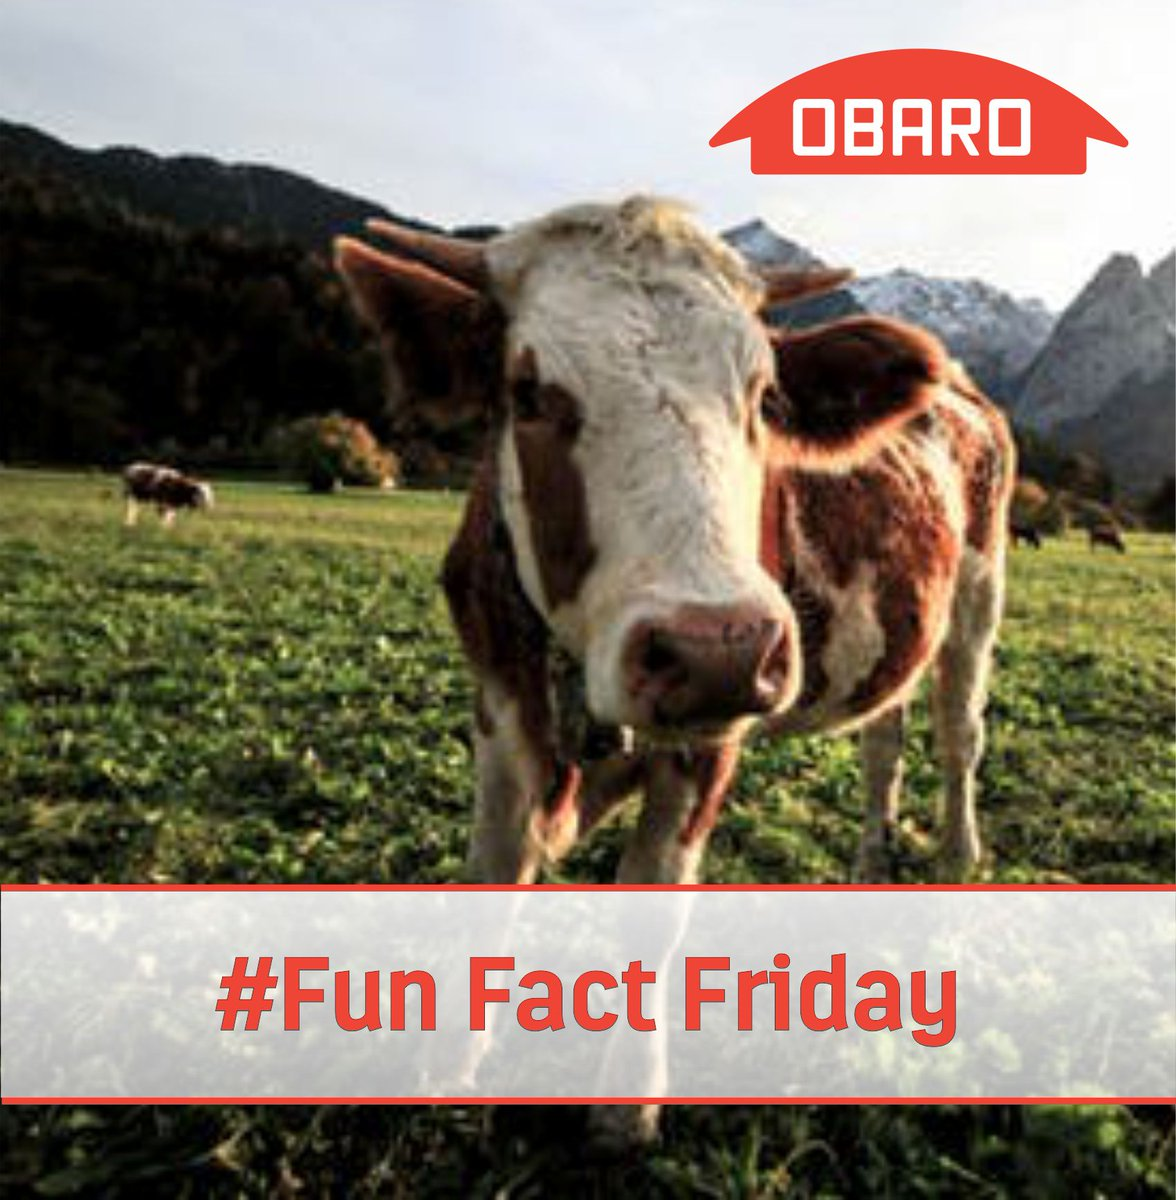 Obaro Group's photo on #FunFactFriday